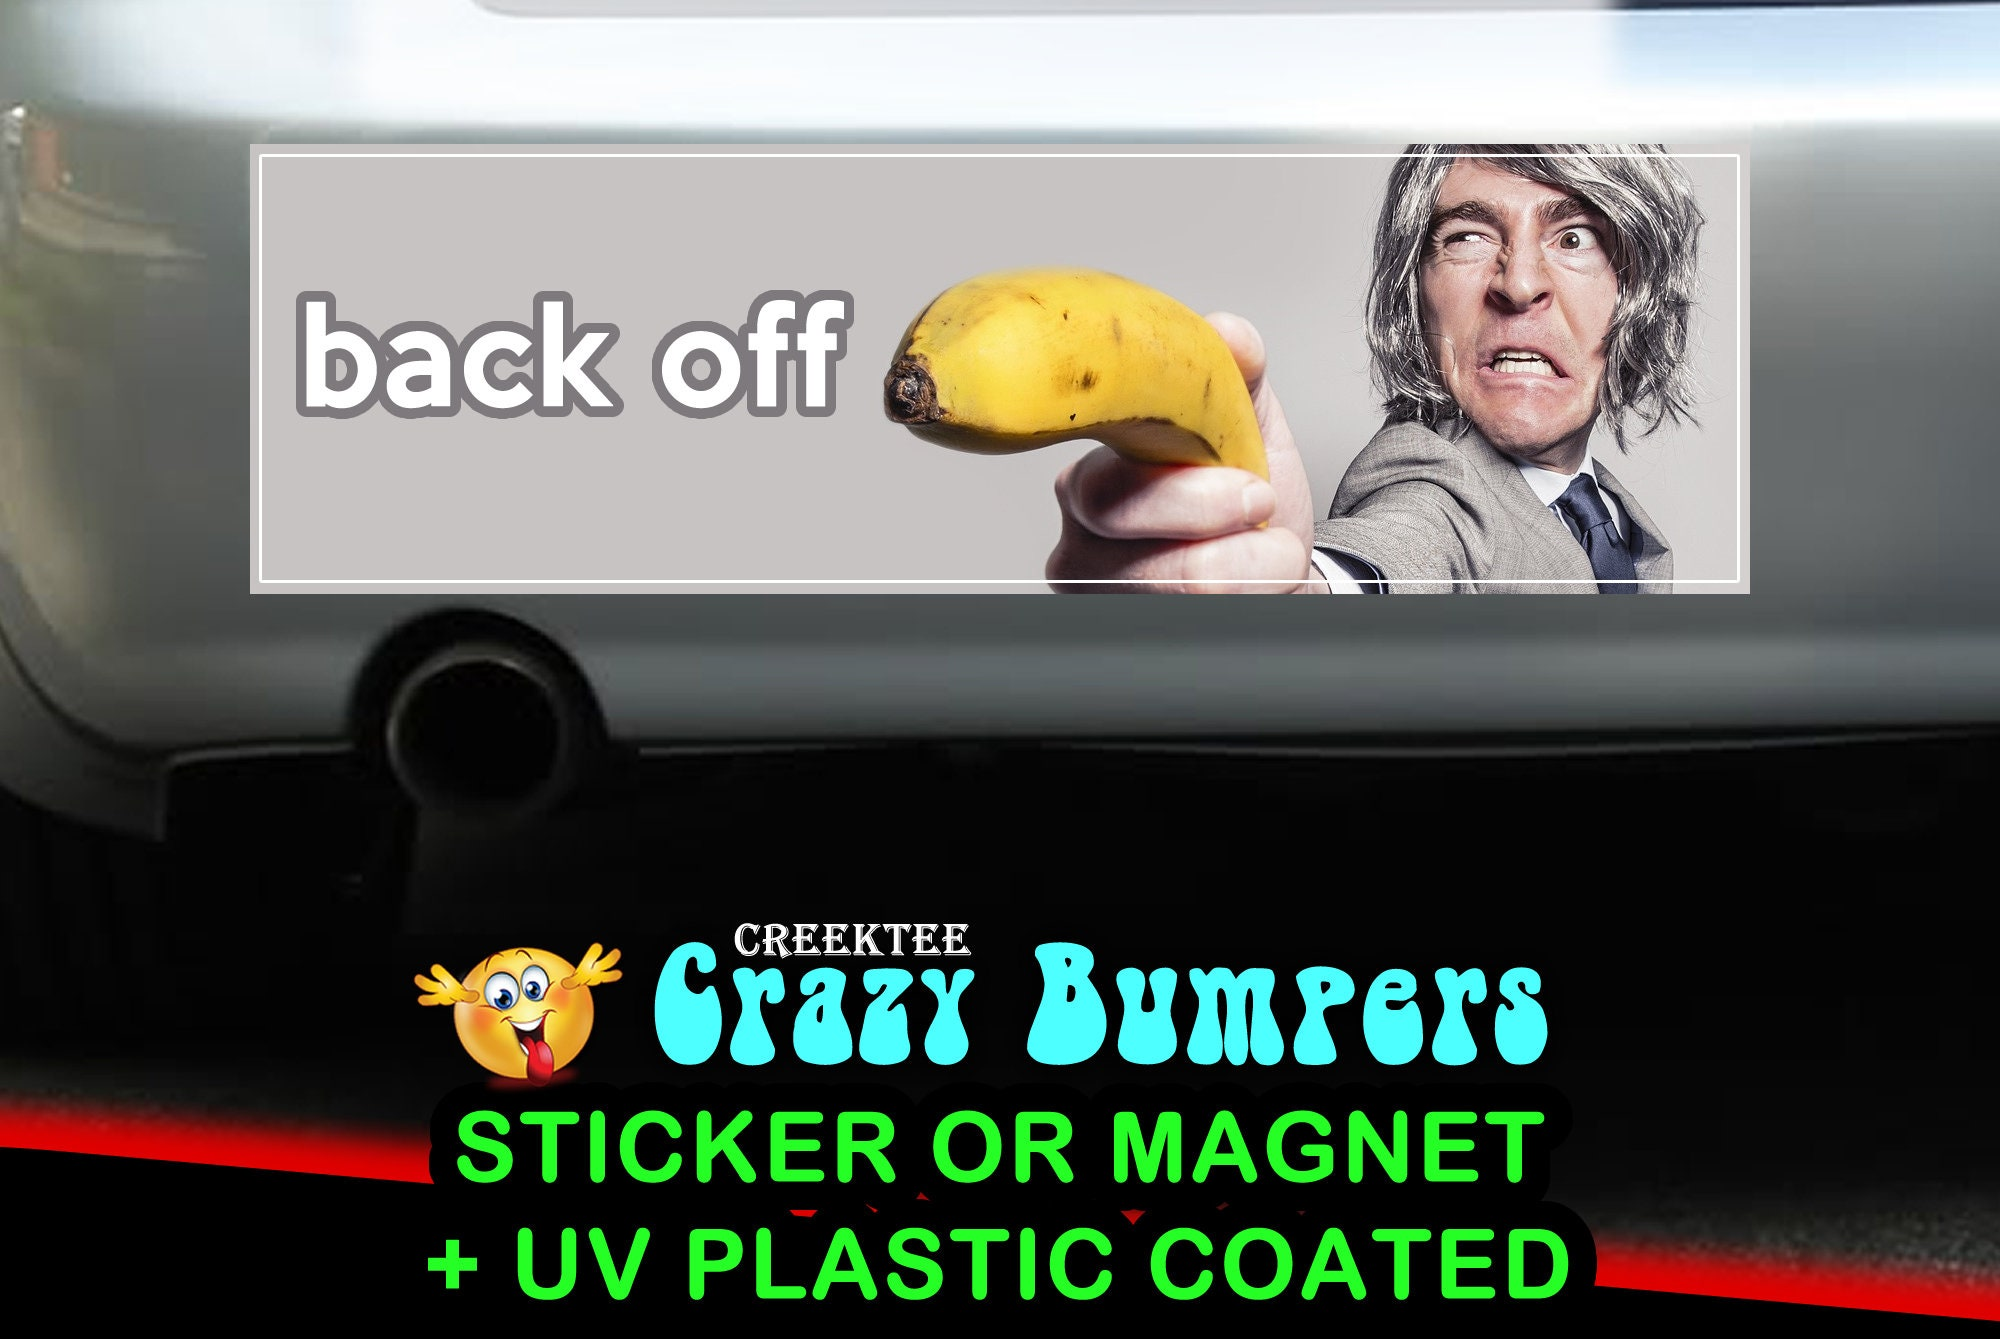 CAD$9.74 - Back Off 10 x 3 Bumper Sticker or Magnetic Bumper Sticker Available